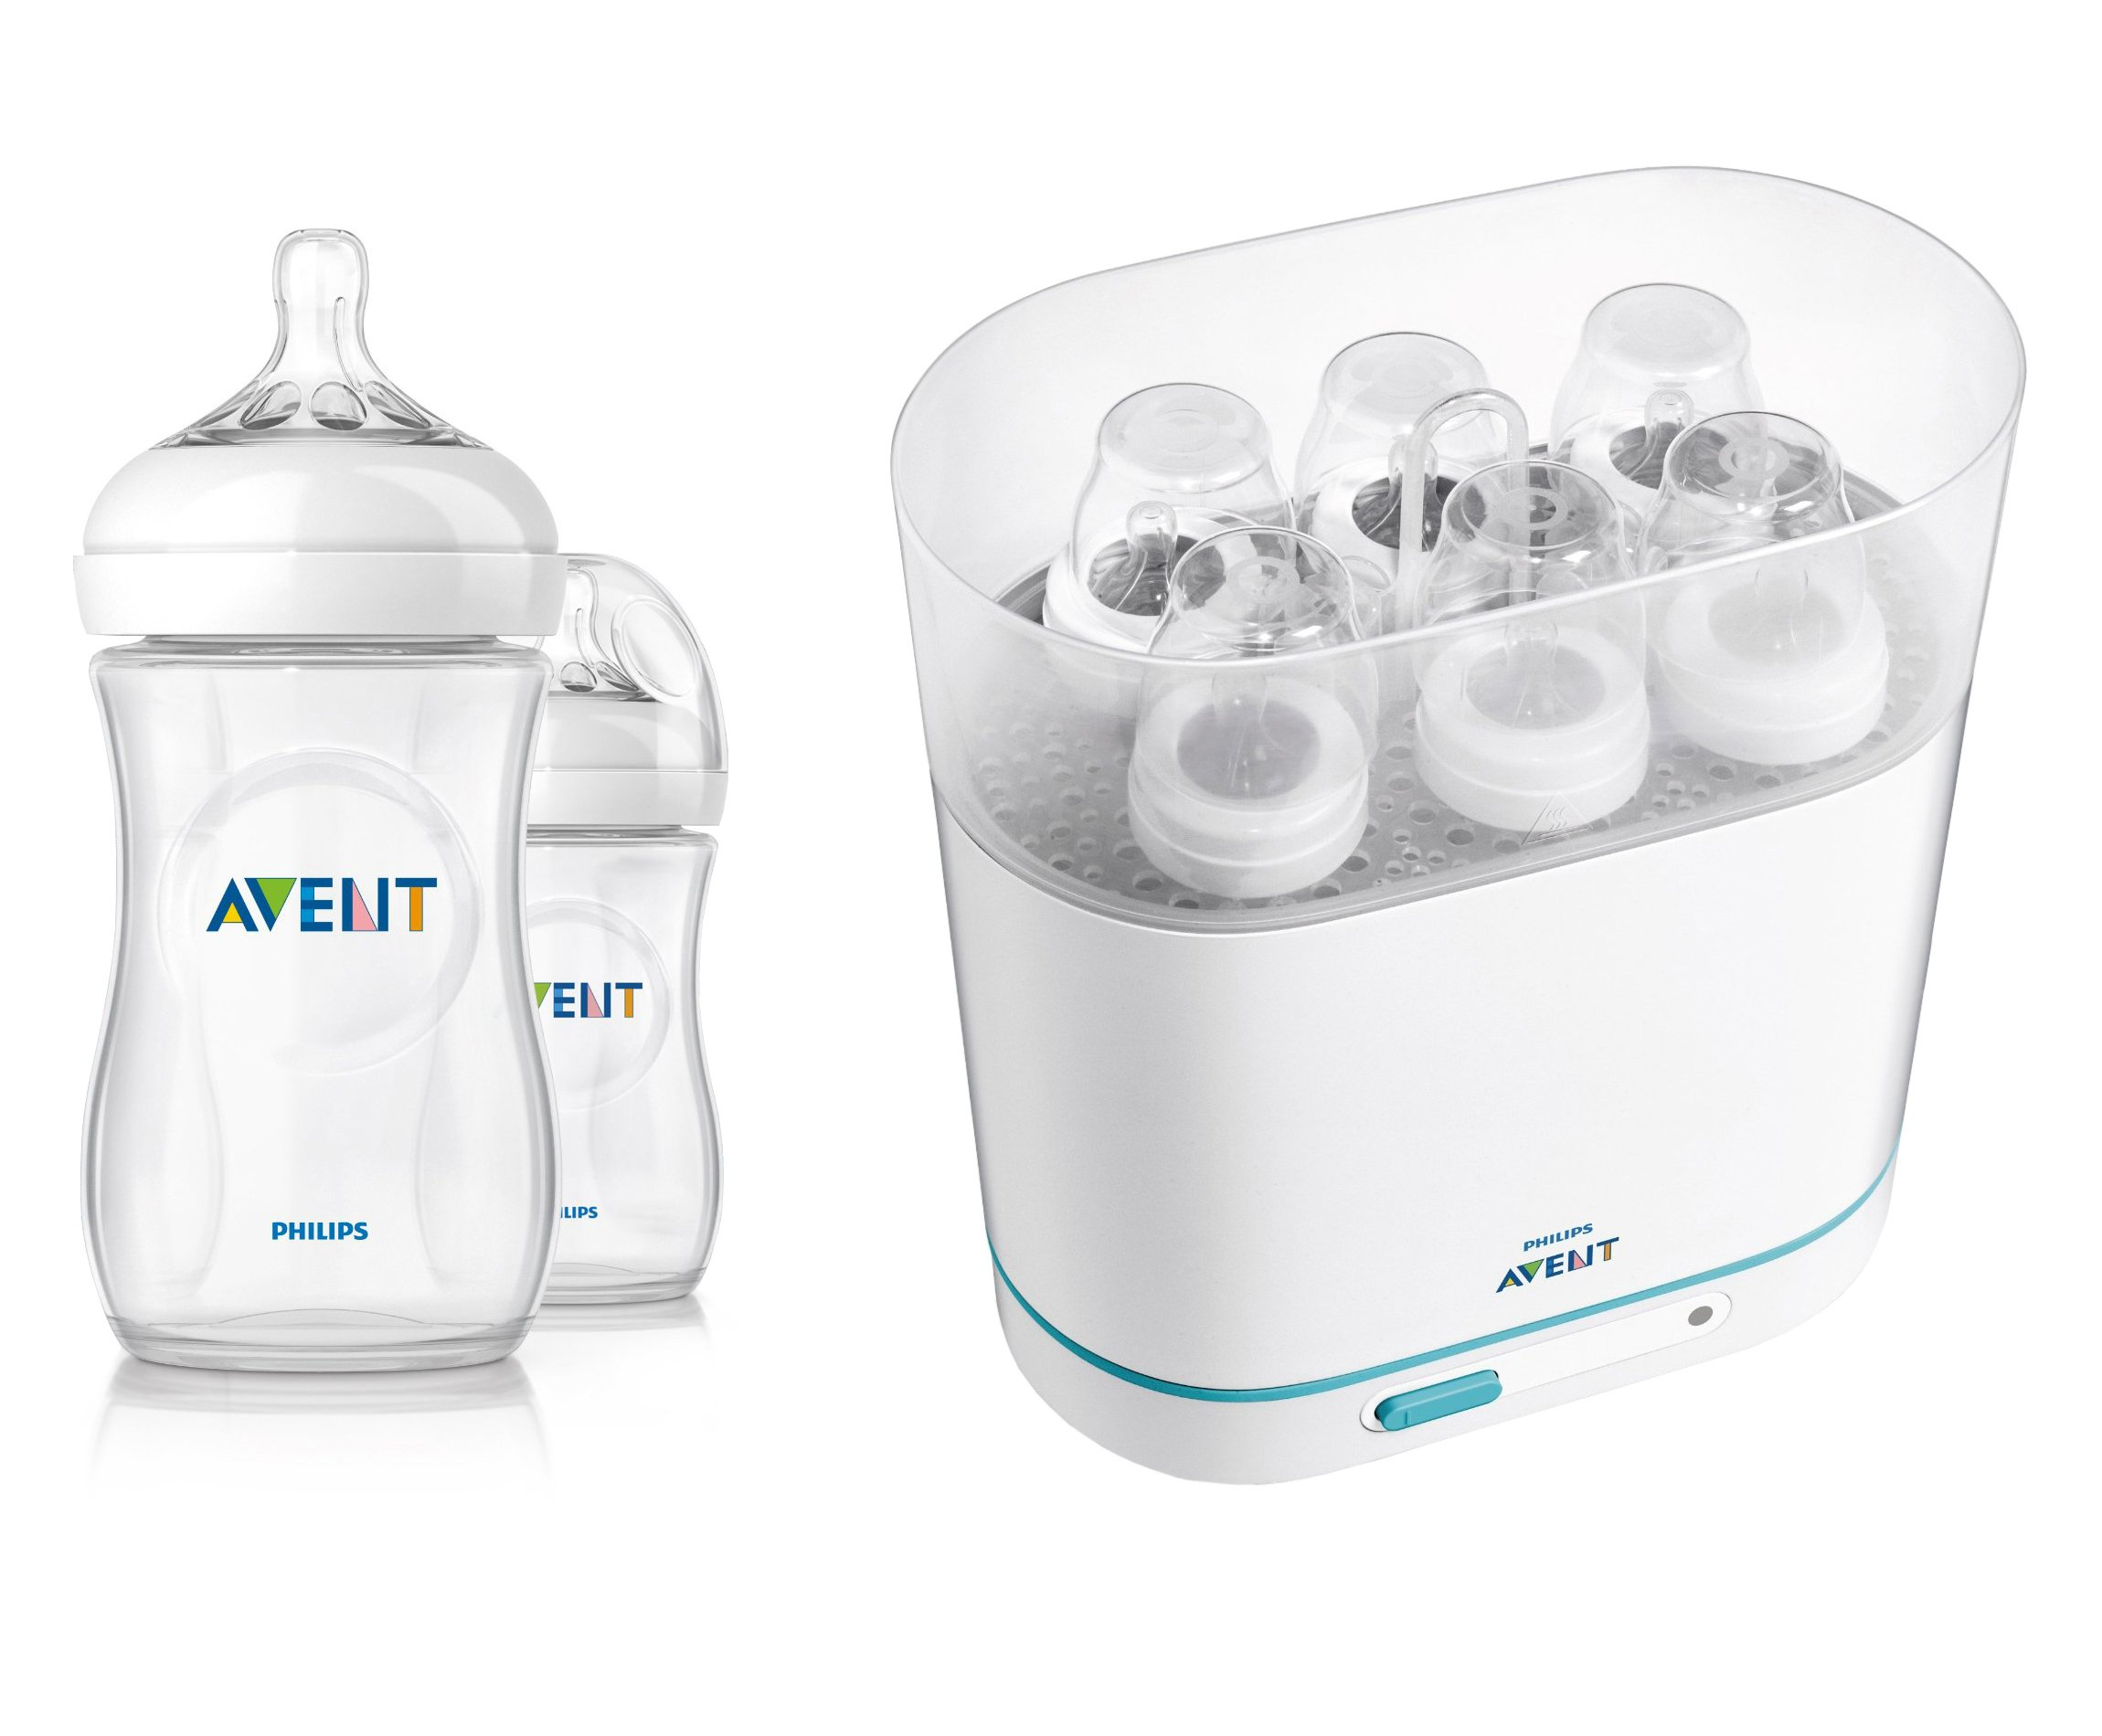 Philips AVENT Electric 3-in-1 Sterilizer with Bottles by Philips AVENT (Image #1)